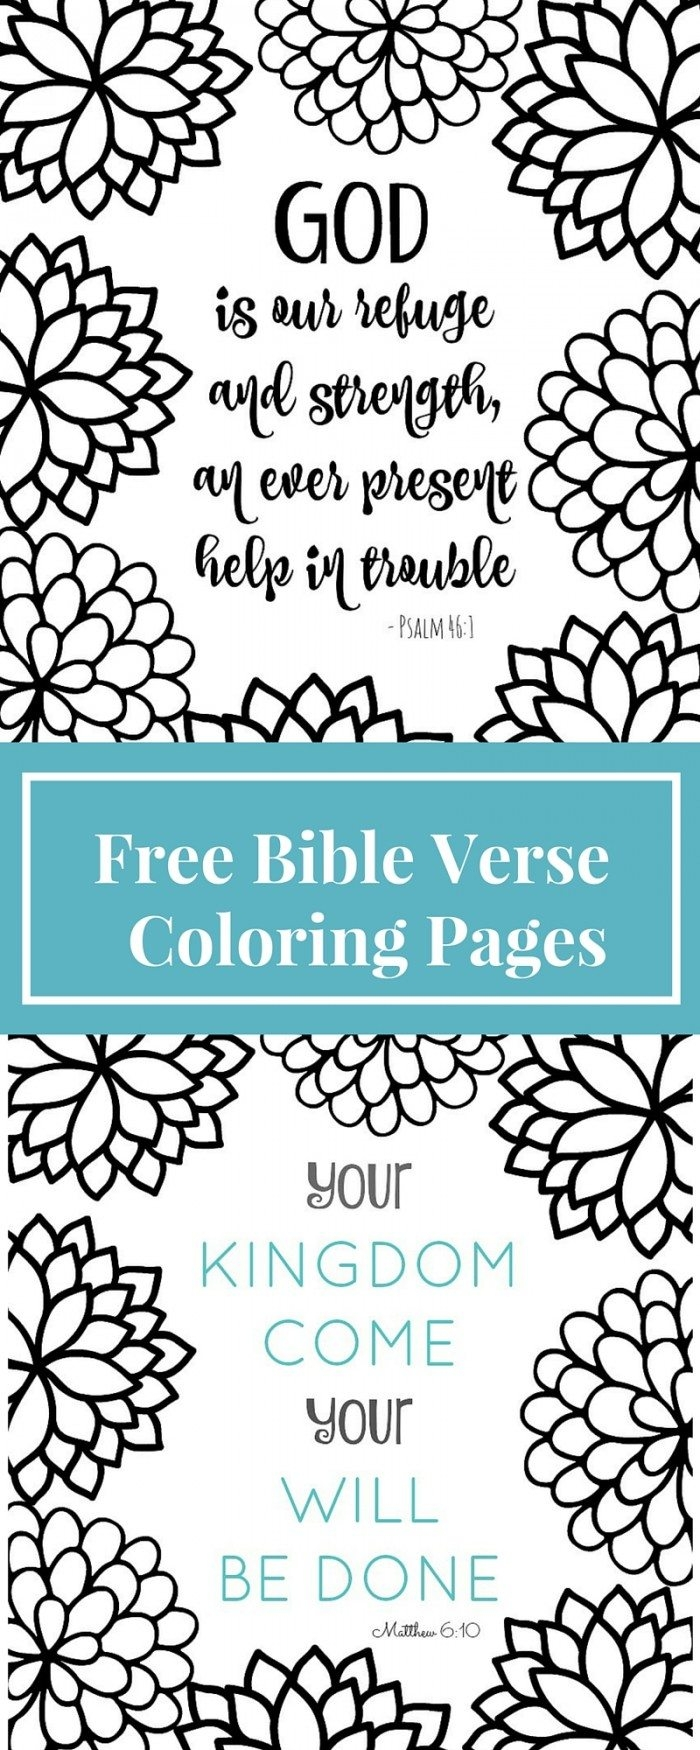 bible coloring pages - free bible verse coloring pages